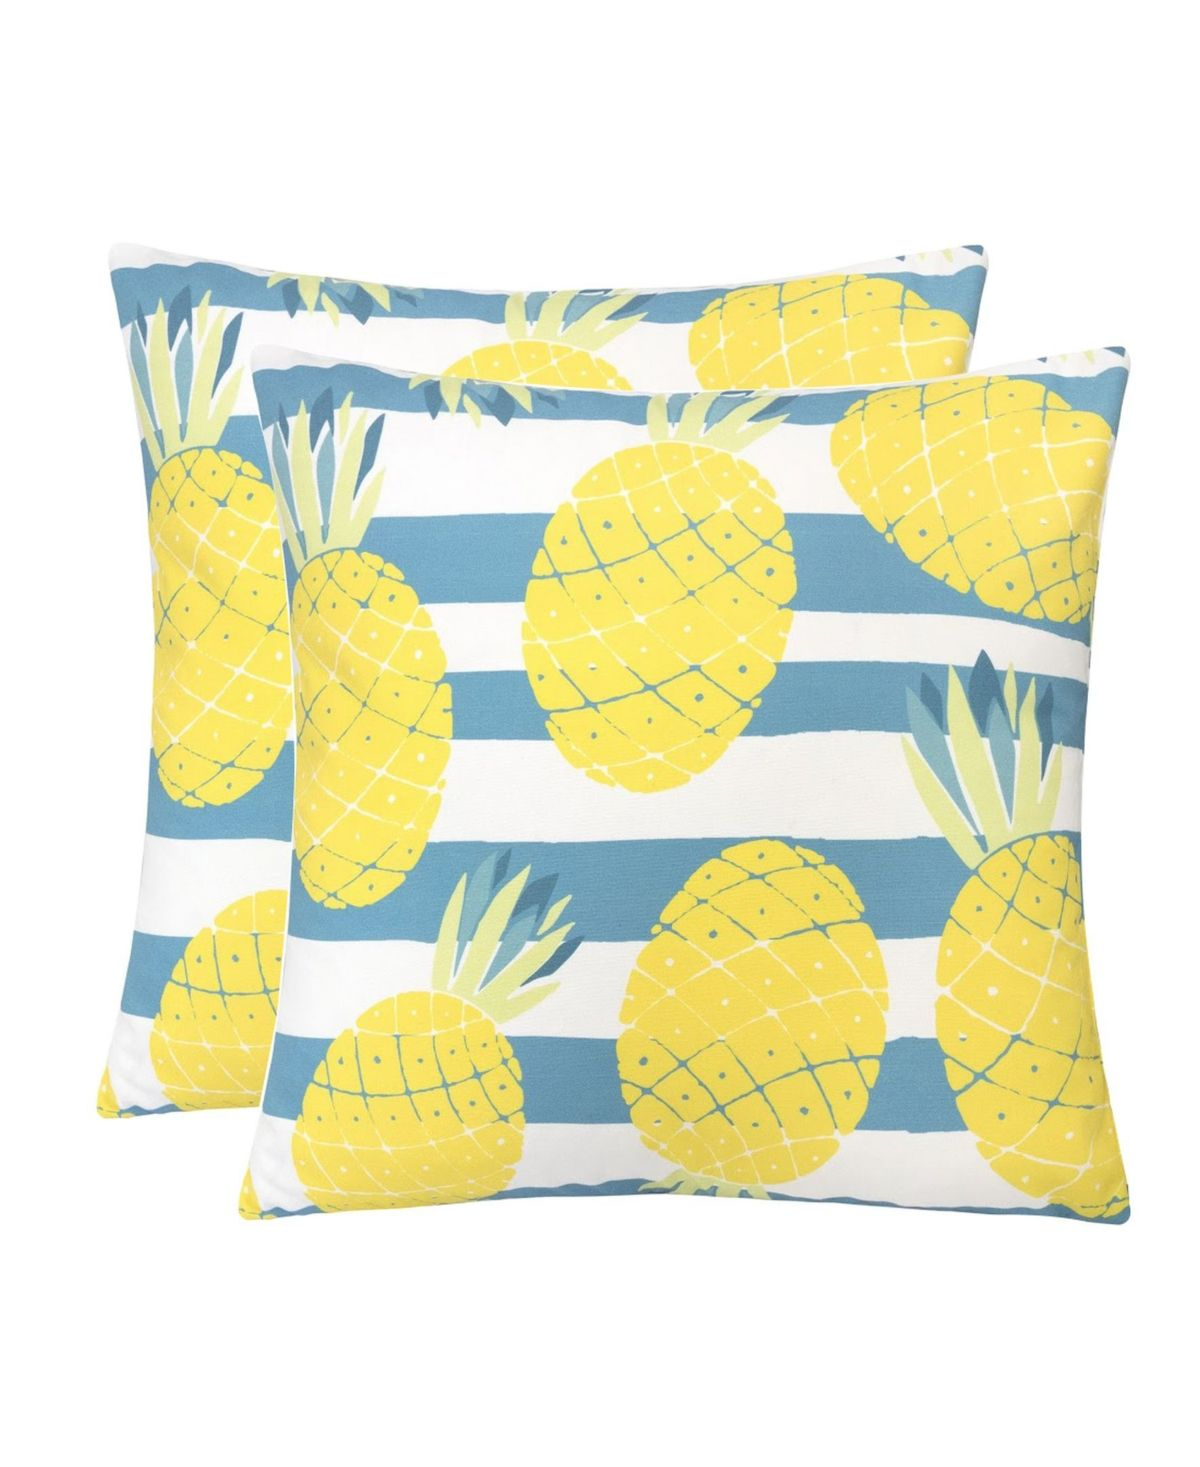 Homey Cozy Outdoor Pillow, Pineapple - Set of 2 - Yellow